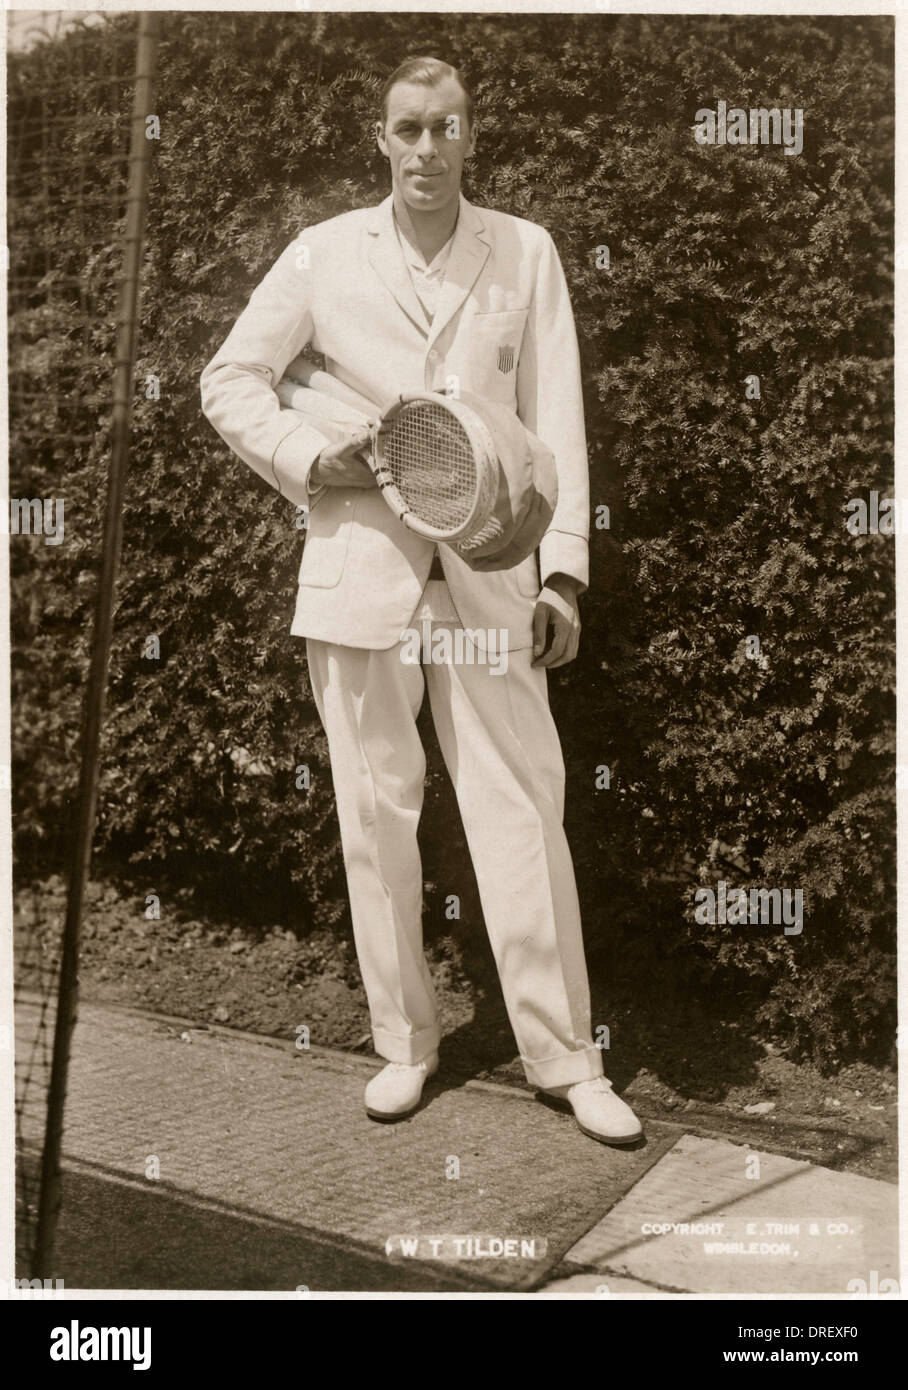 William T Tilden, the American champion of Wimbledon - Stock Image